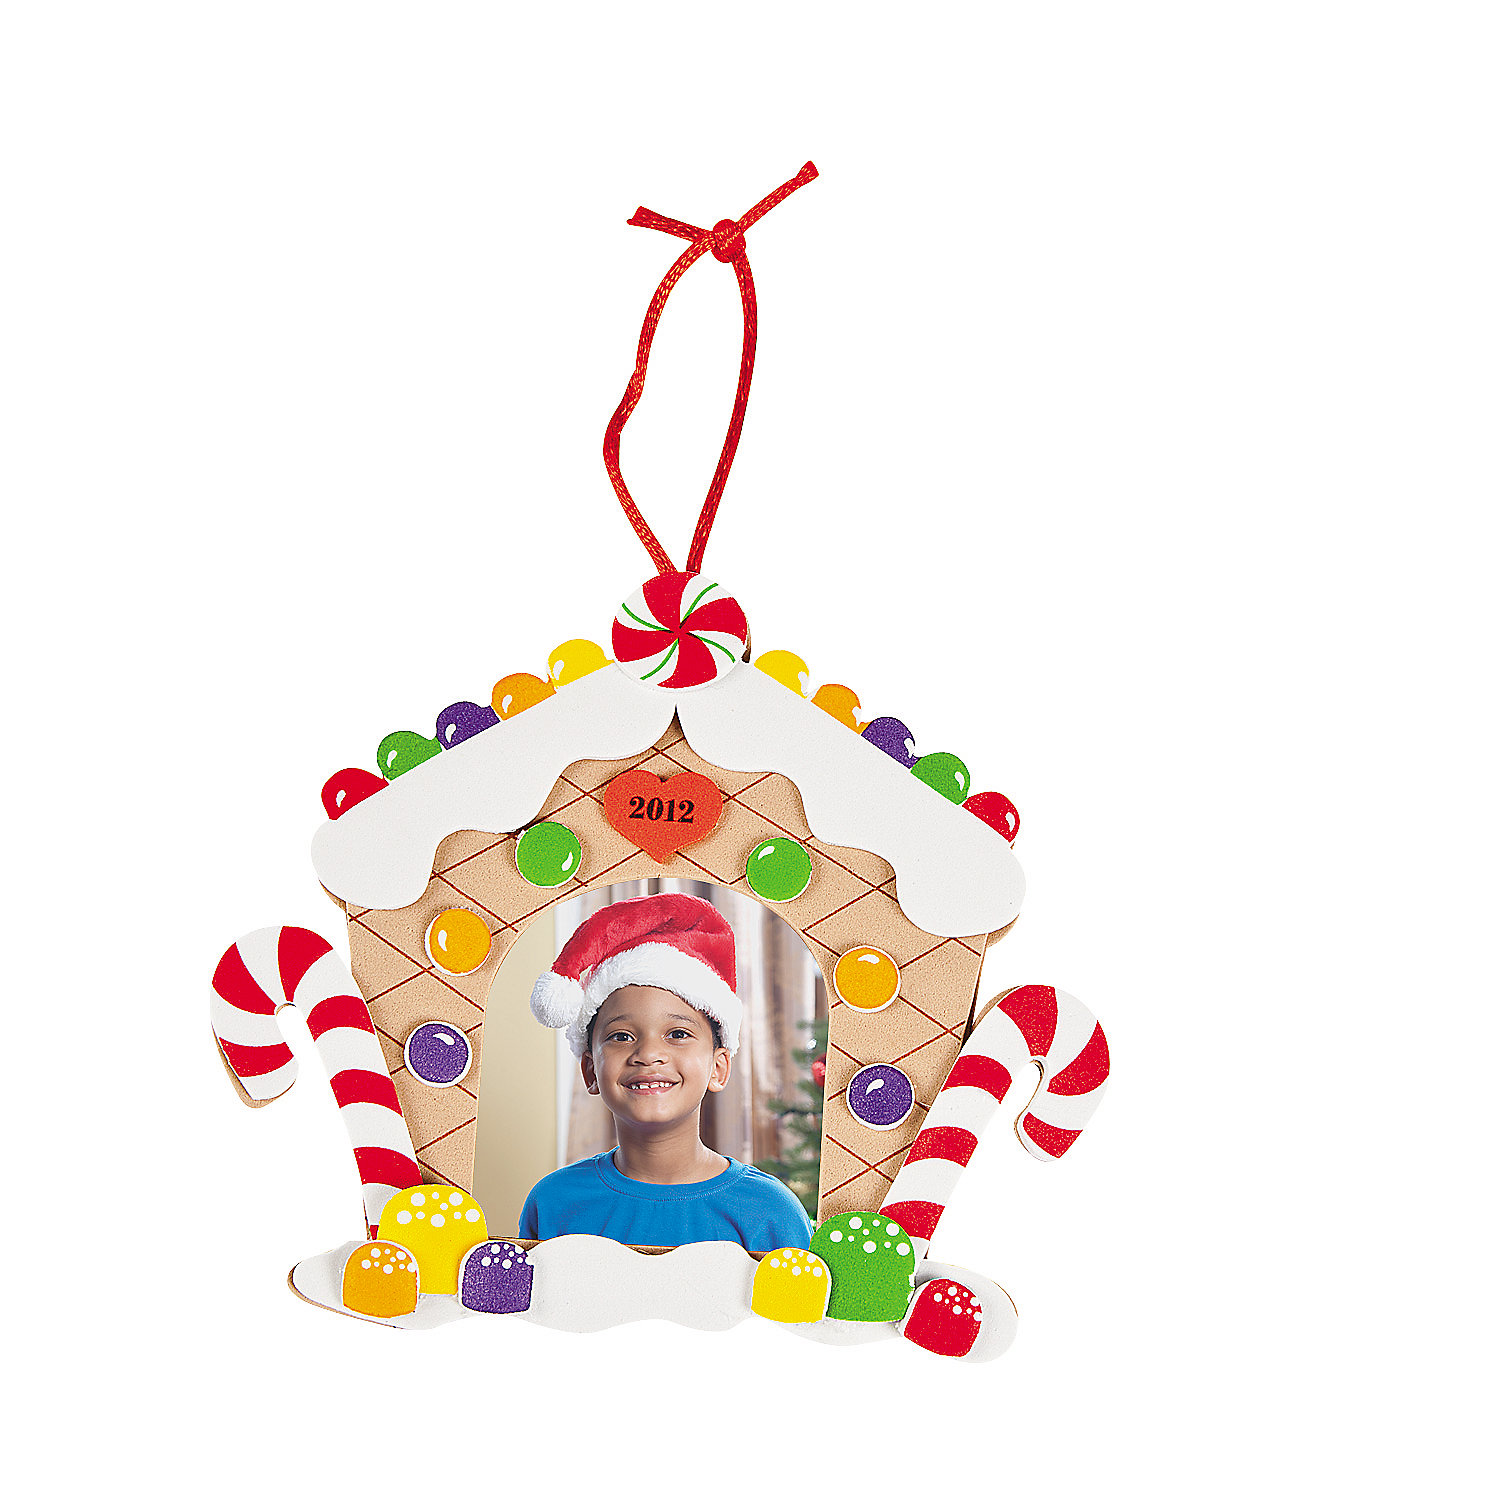 2012 gingerbread house picture frame ornament craft kit for Photo frame ornament craft